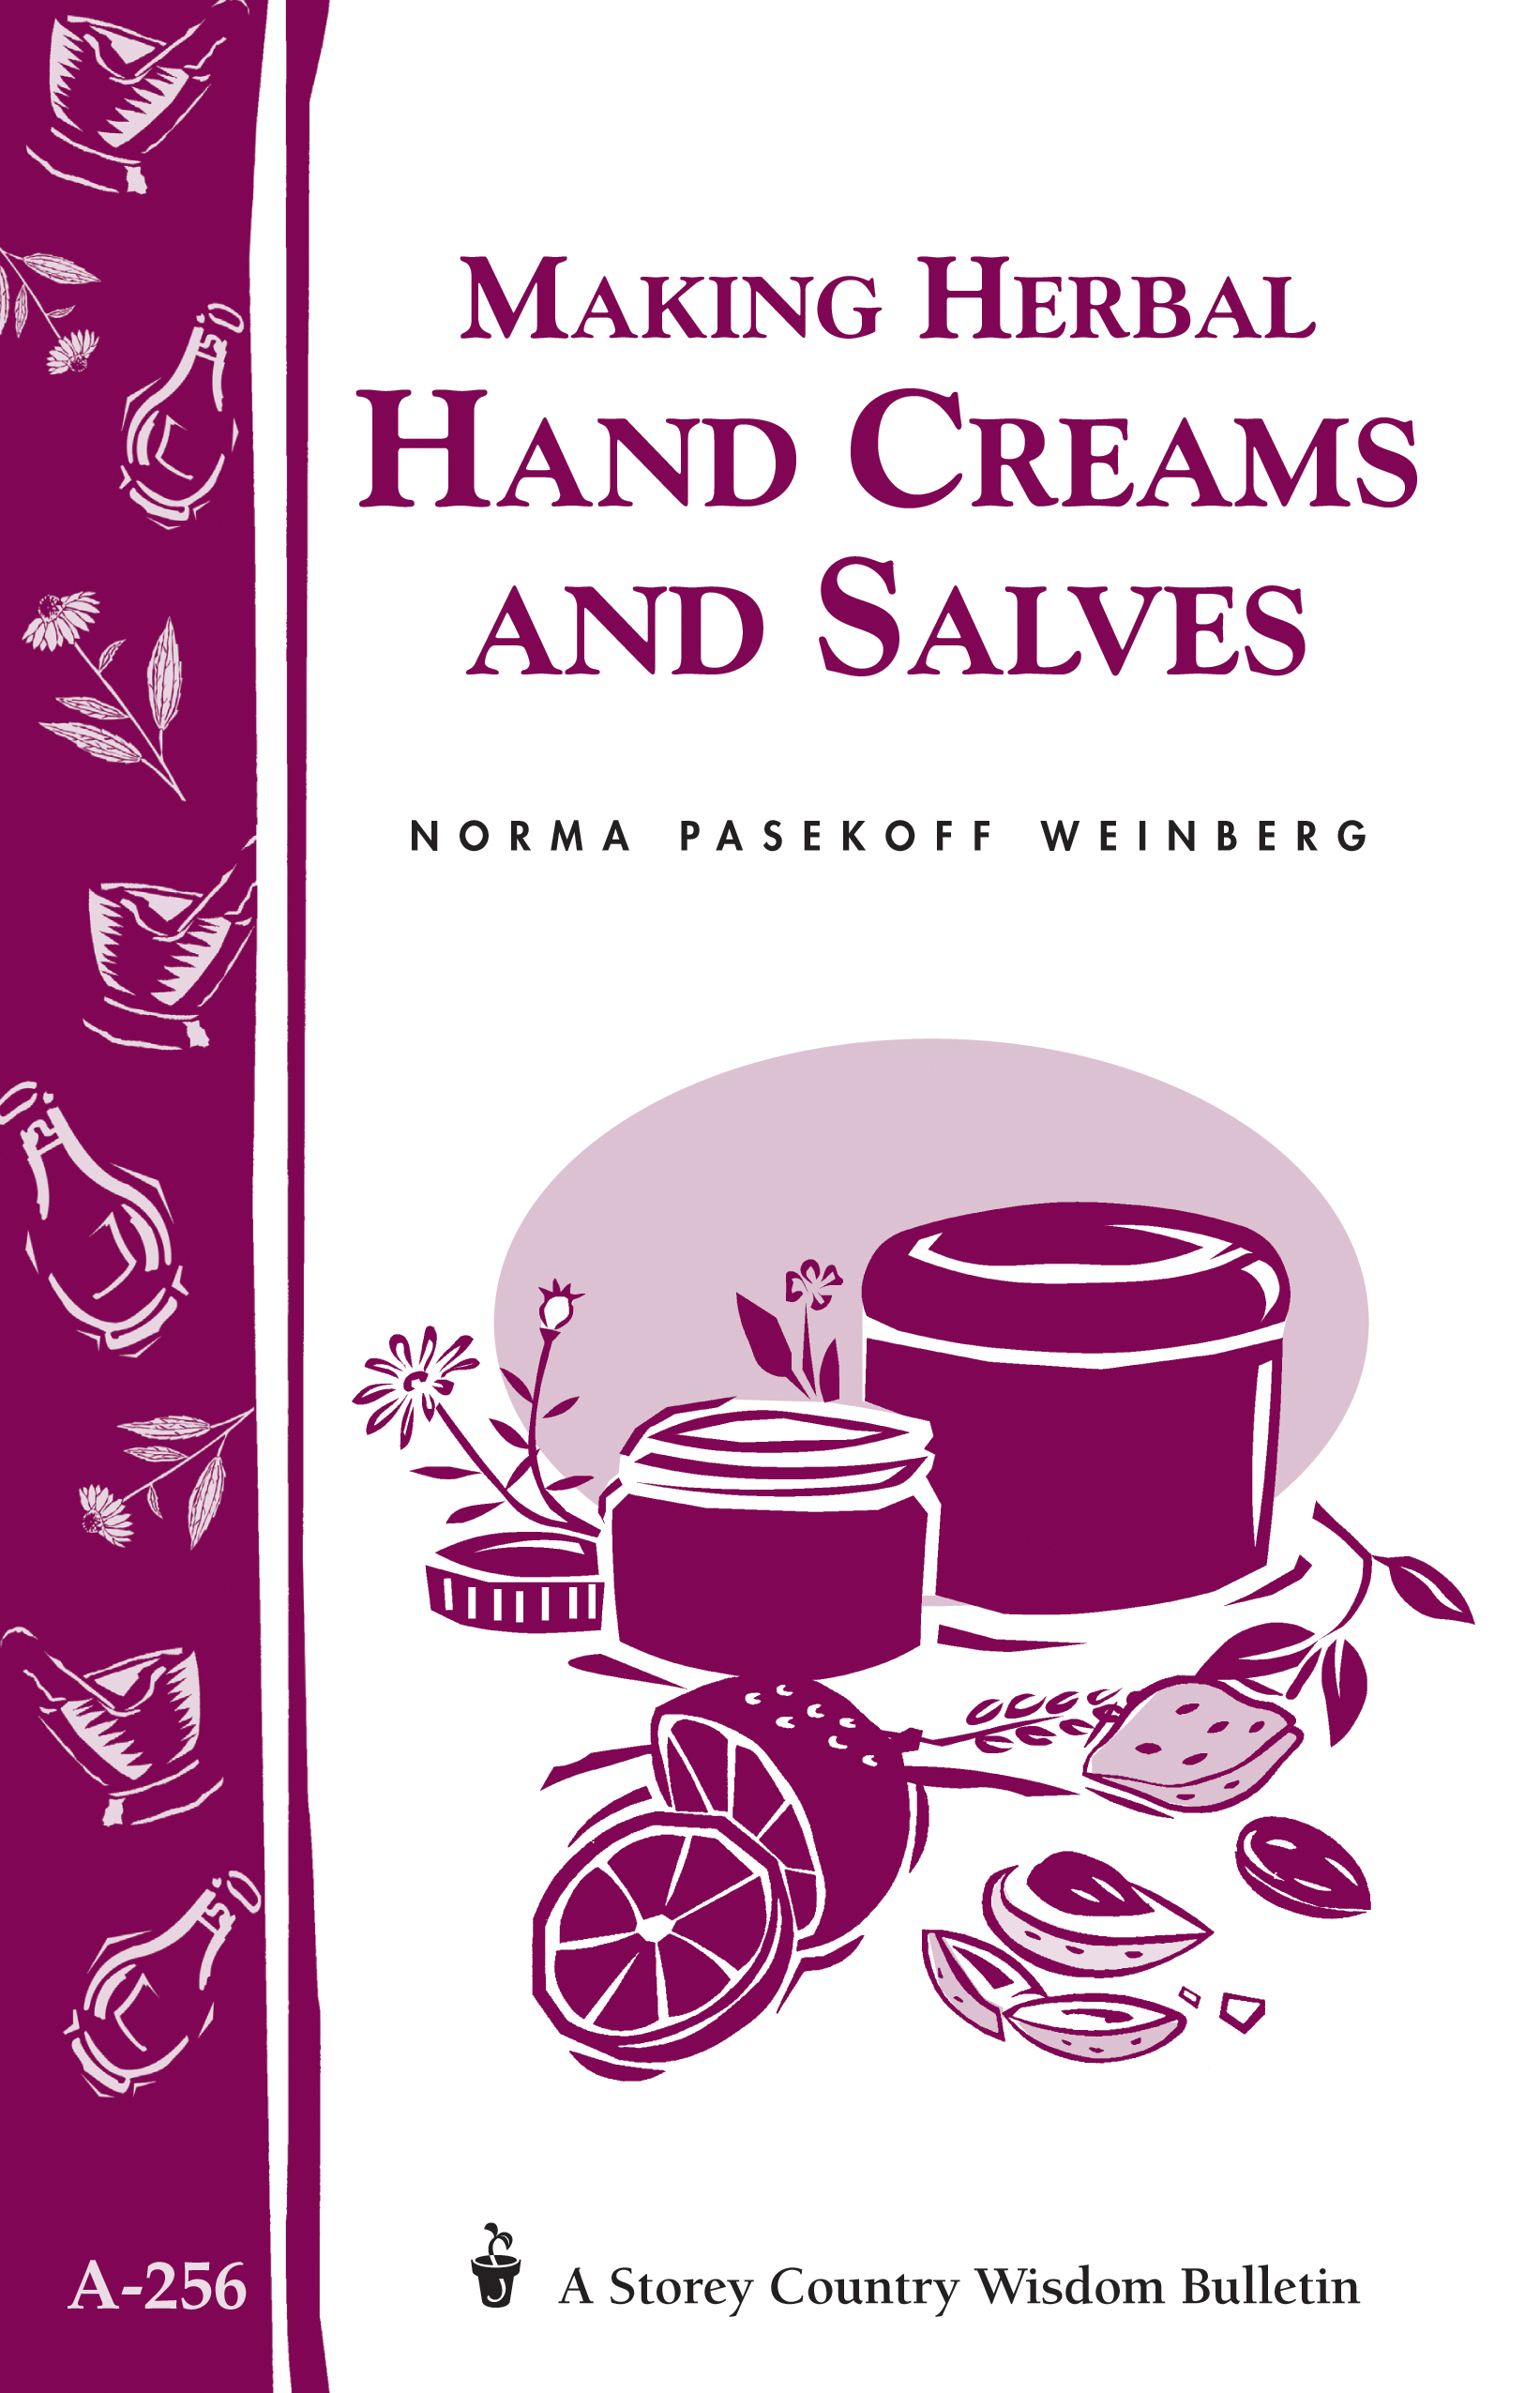 Making Herbal Hand Creams and Salves Storey's Country Wisdom Bulletin A-256 - Norma Pasekoff Weinberg